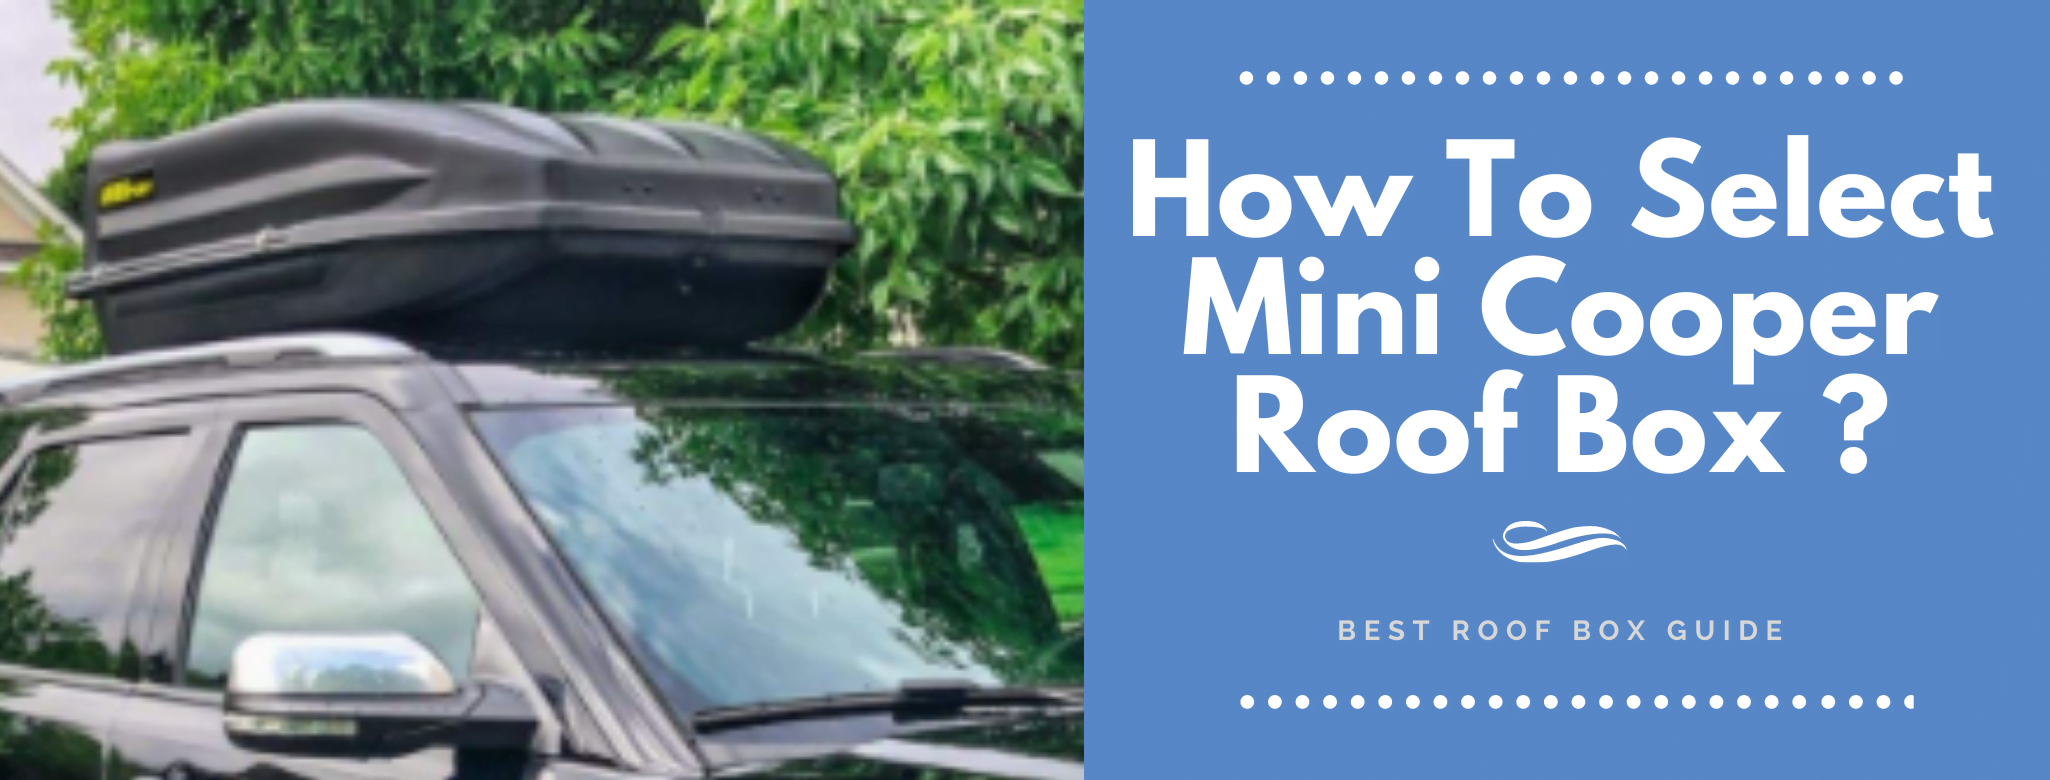 🚫 How To Select Mini Cooper Roof Box ? | 4 Best Mini Cooper Roof Boxes ✔️